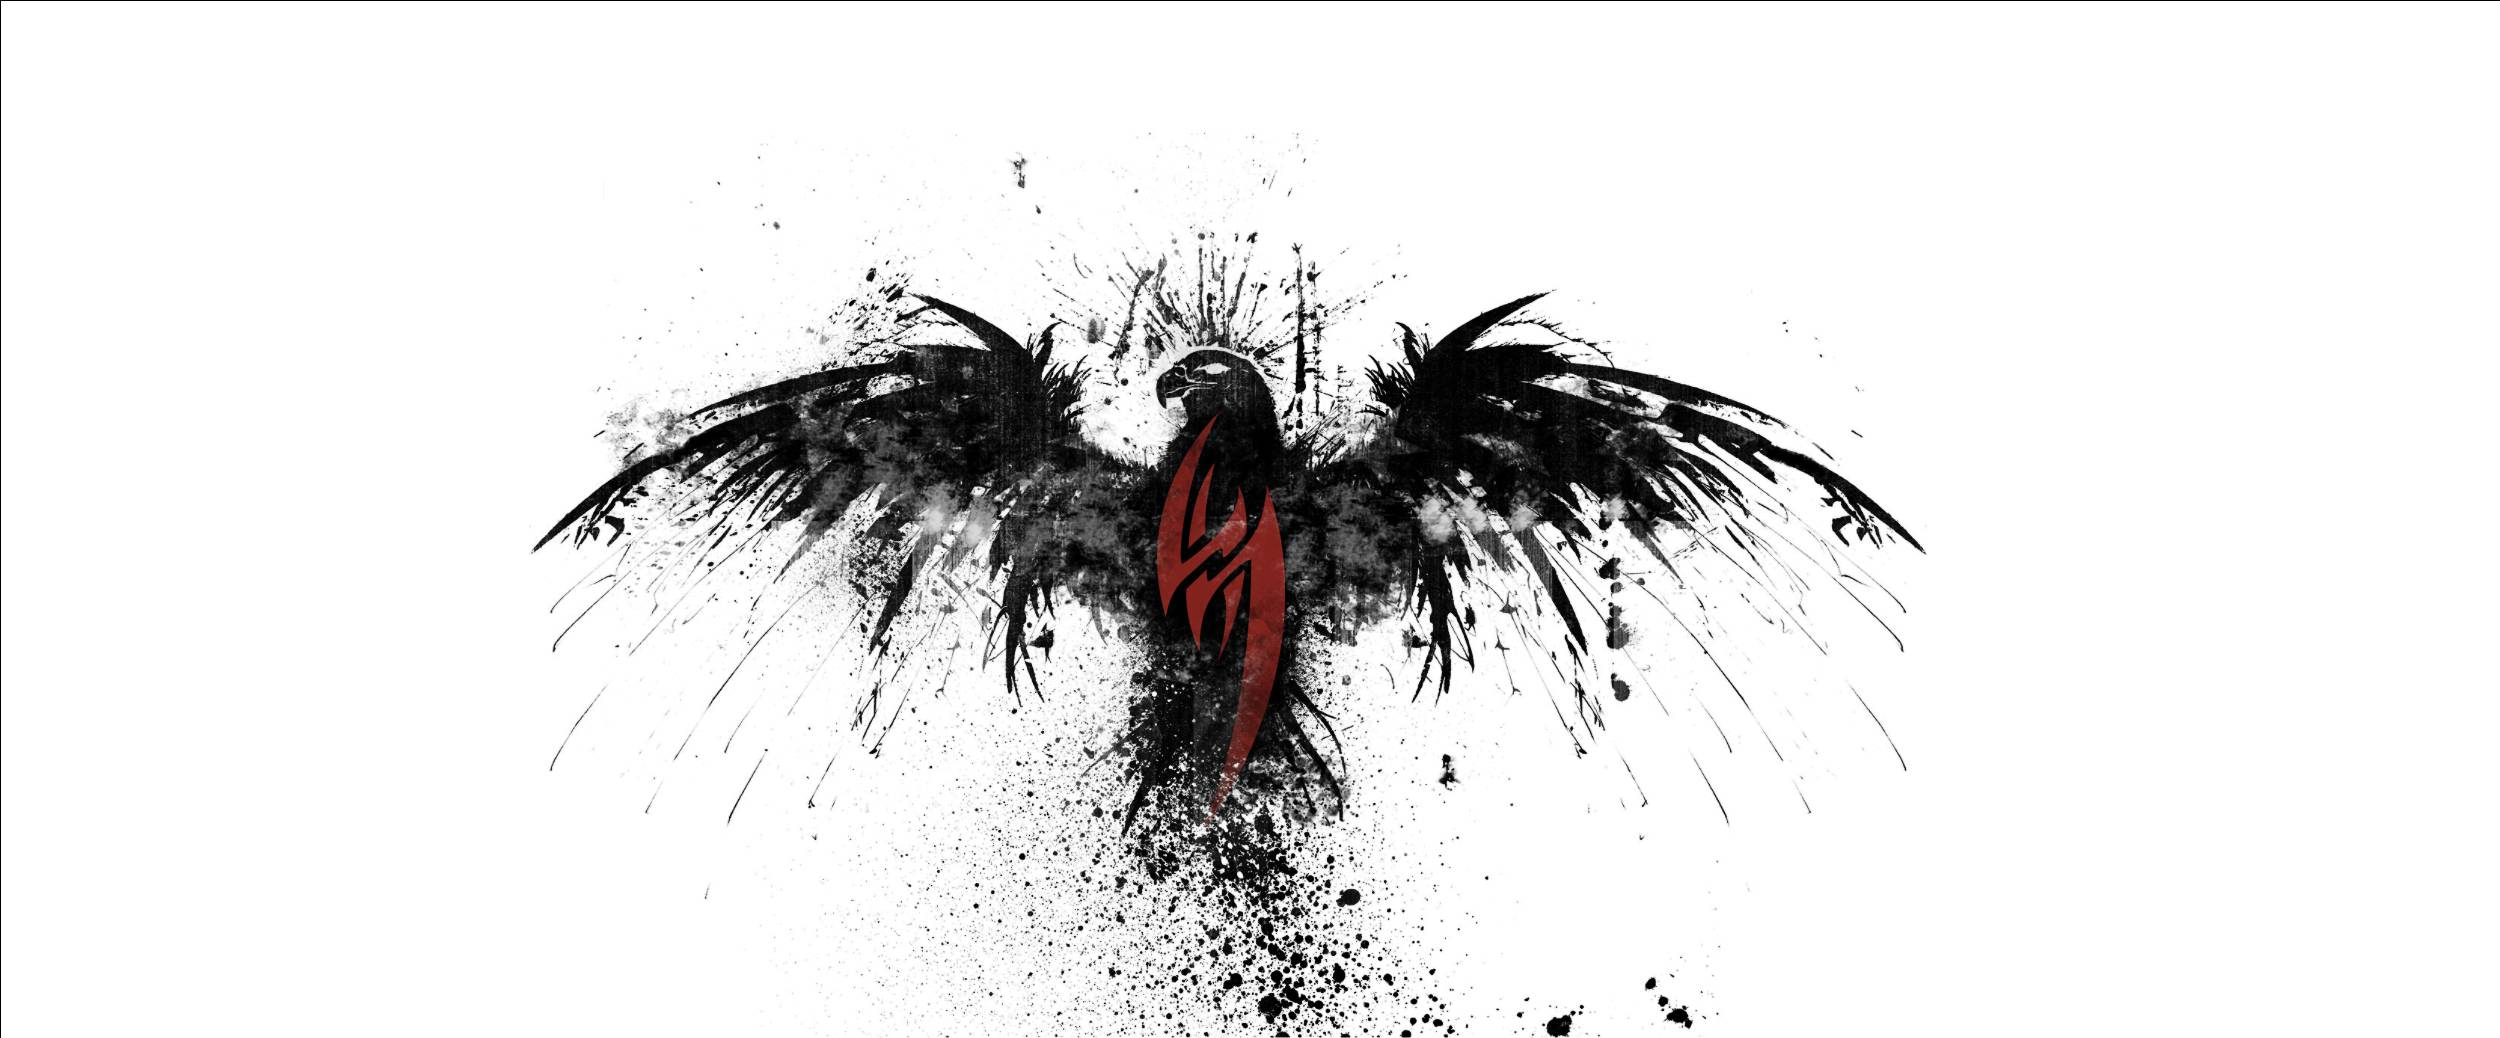 Tattoo Wallpapers Wallpaper Cave Eagle Tattoo Gothic 2500x1038 Wallpaper Teahub Io Eagle tattoo wallpaper free download